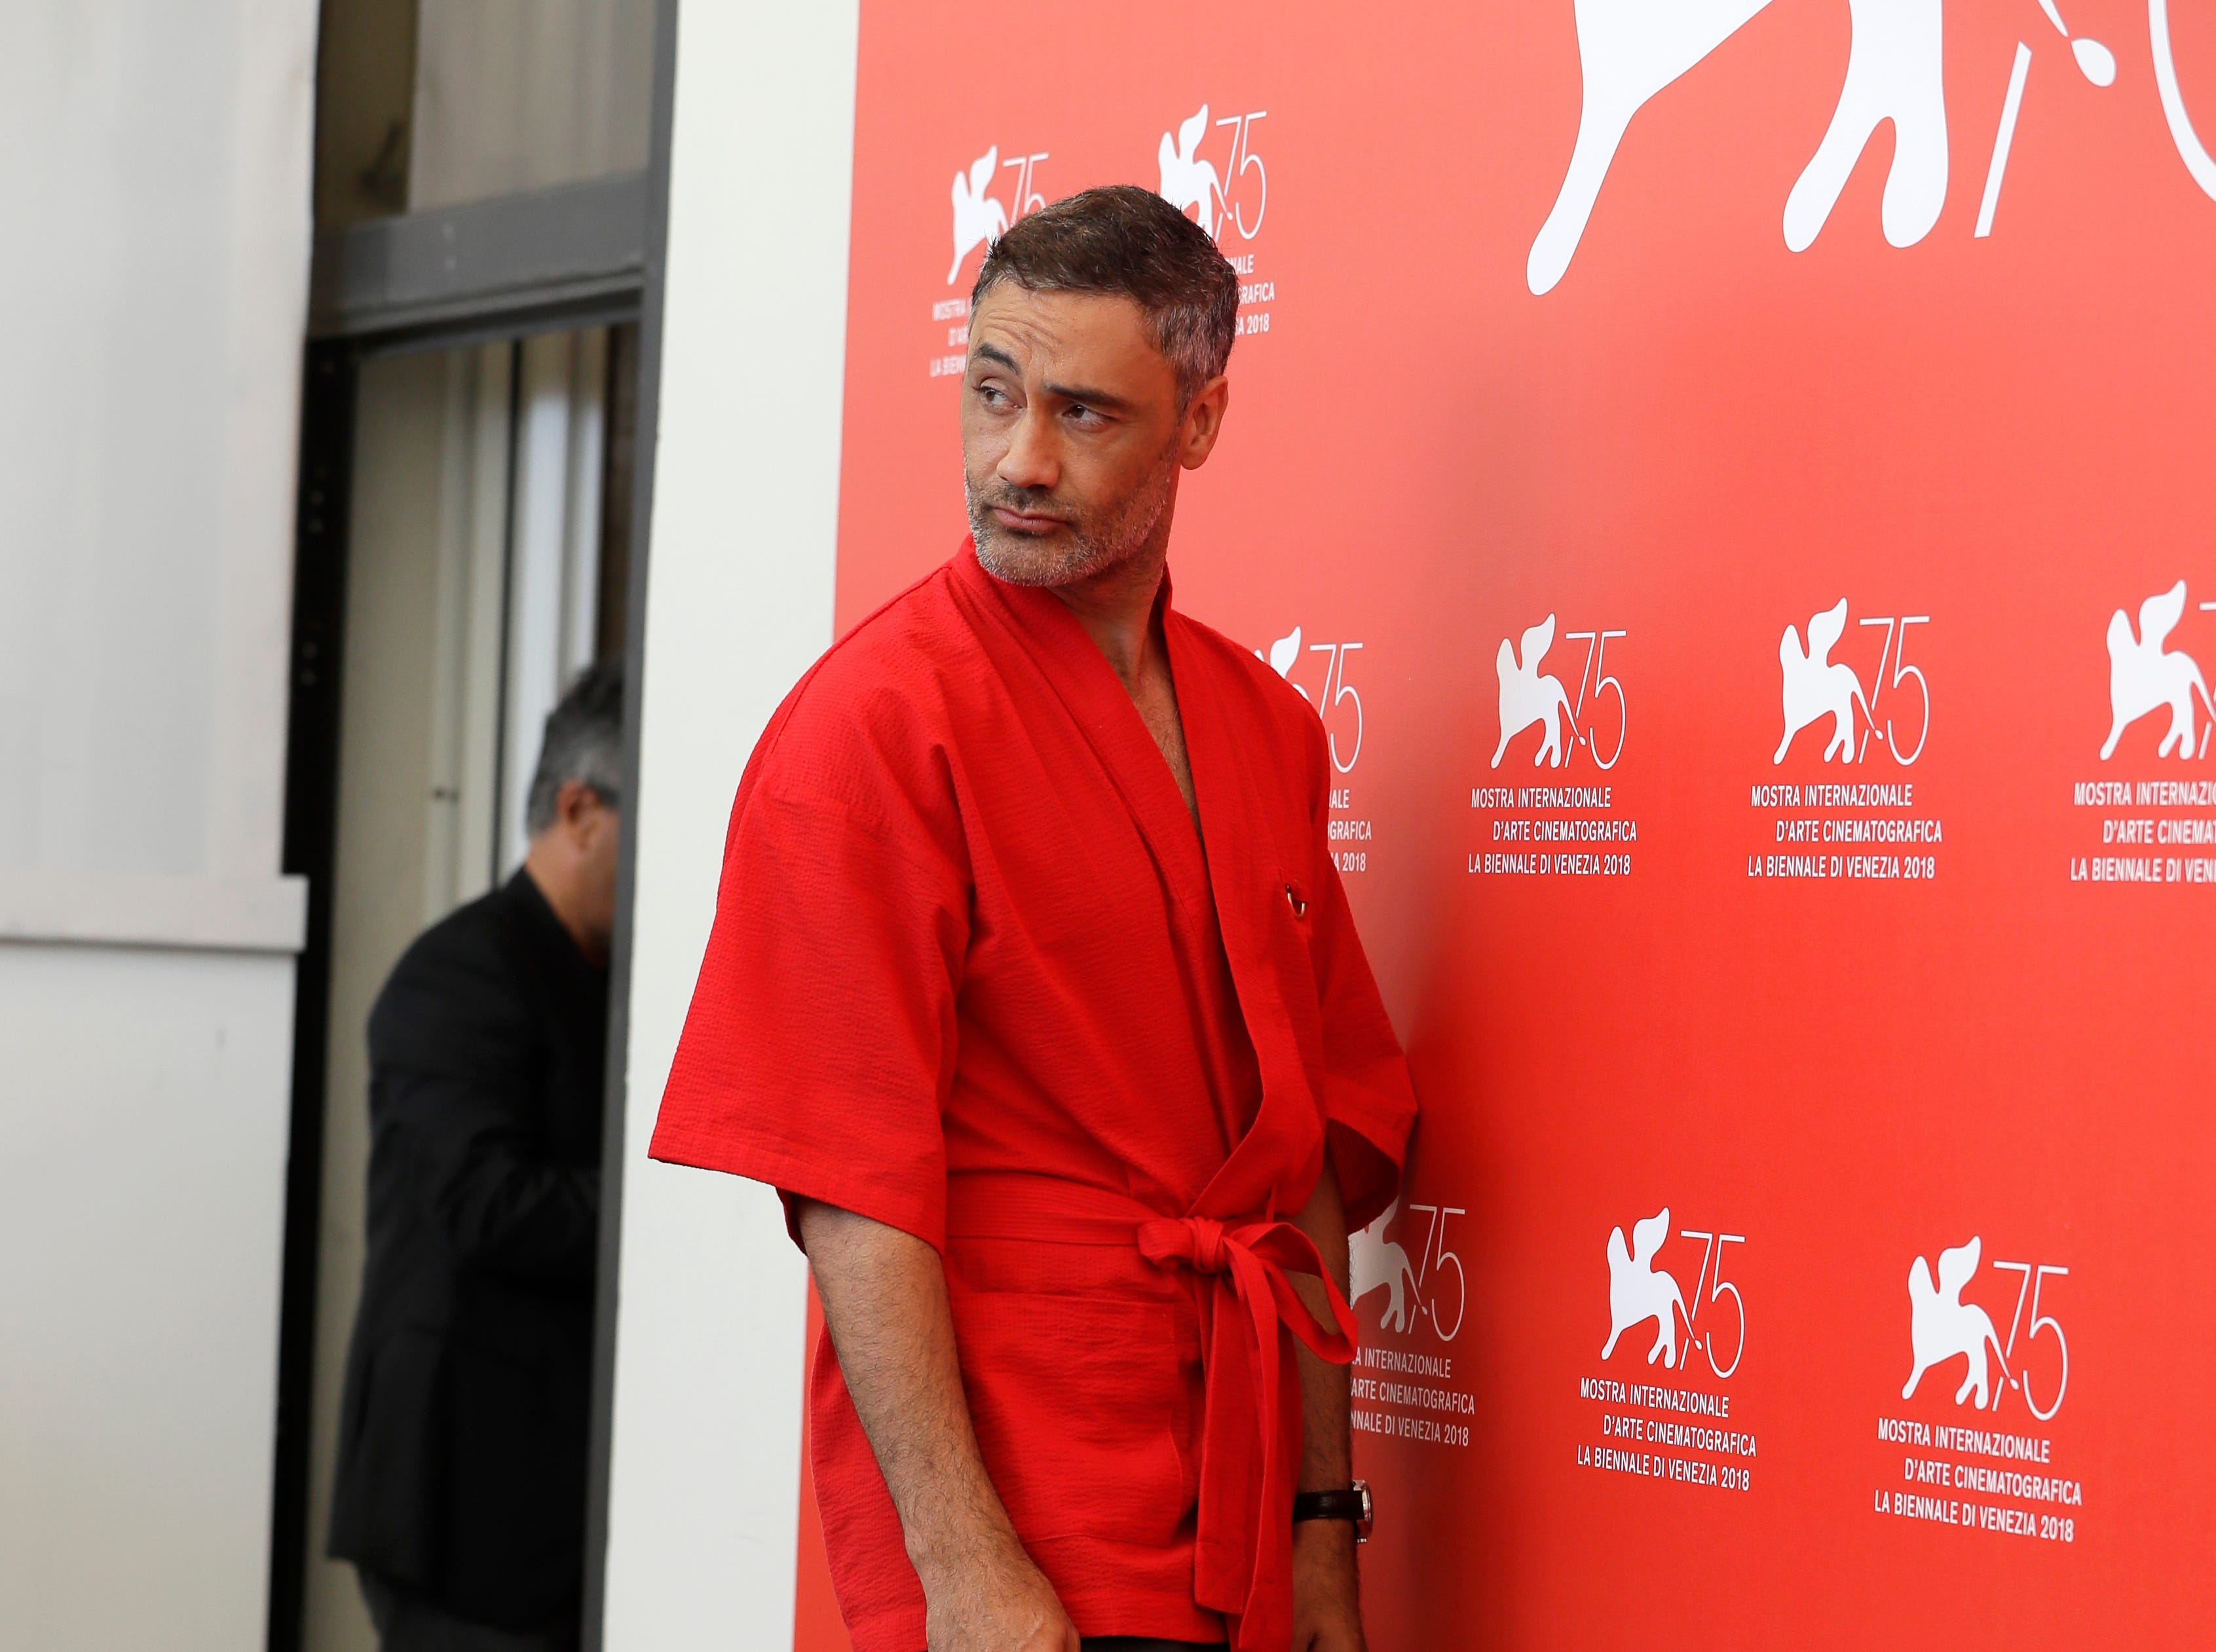 Jury member Taika Waititi poses for photographers at the photo call for the Jury at the 75th edition of the Venice Film Festival in Venice, Wednesday, Aug. 29, 2018. (AP Photo/Kirsty Wigglesworth)